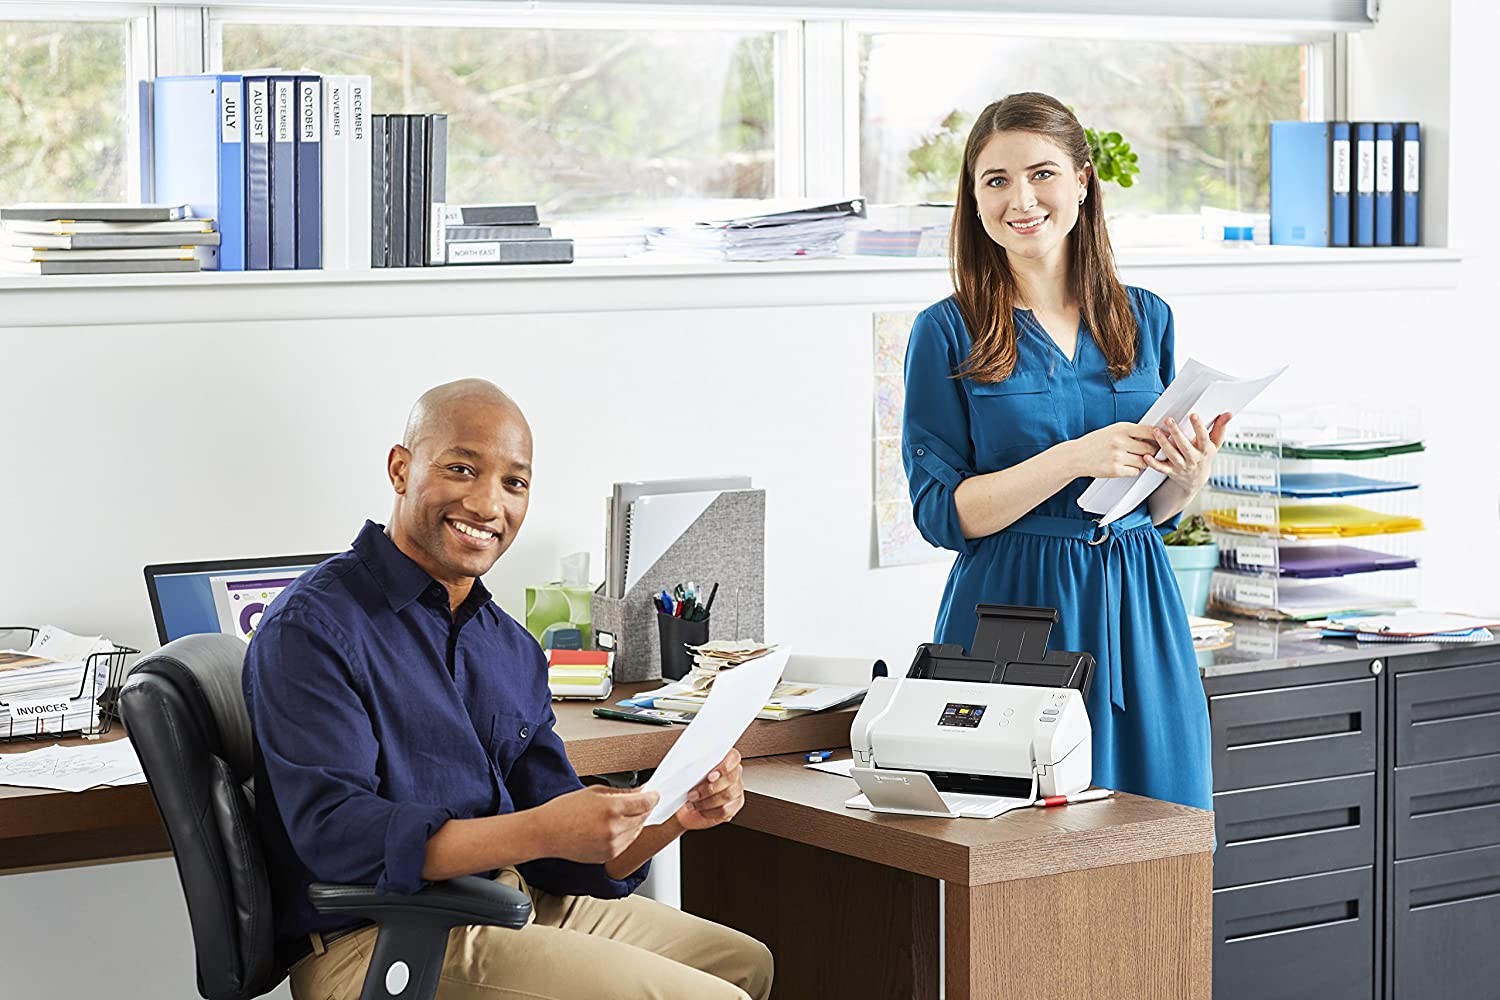 man sitting at a work desk and woman standing, both are smiling and holding sheets of paper